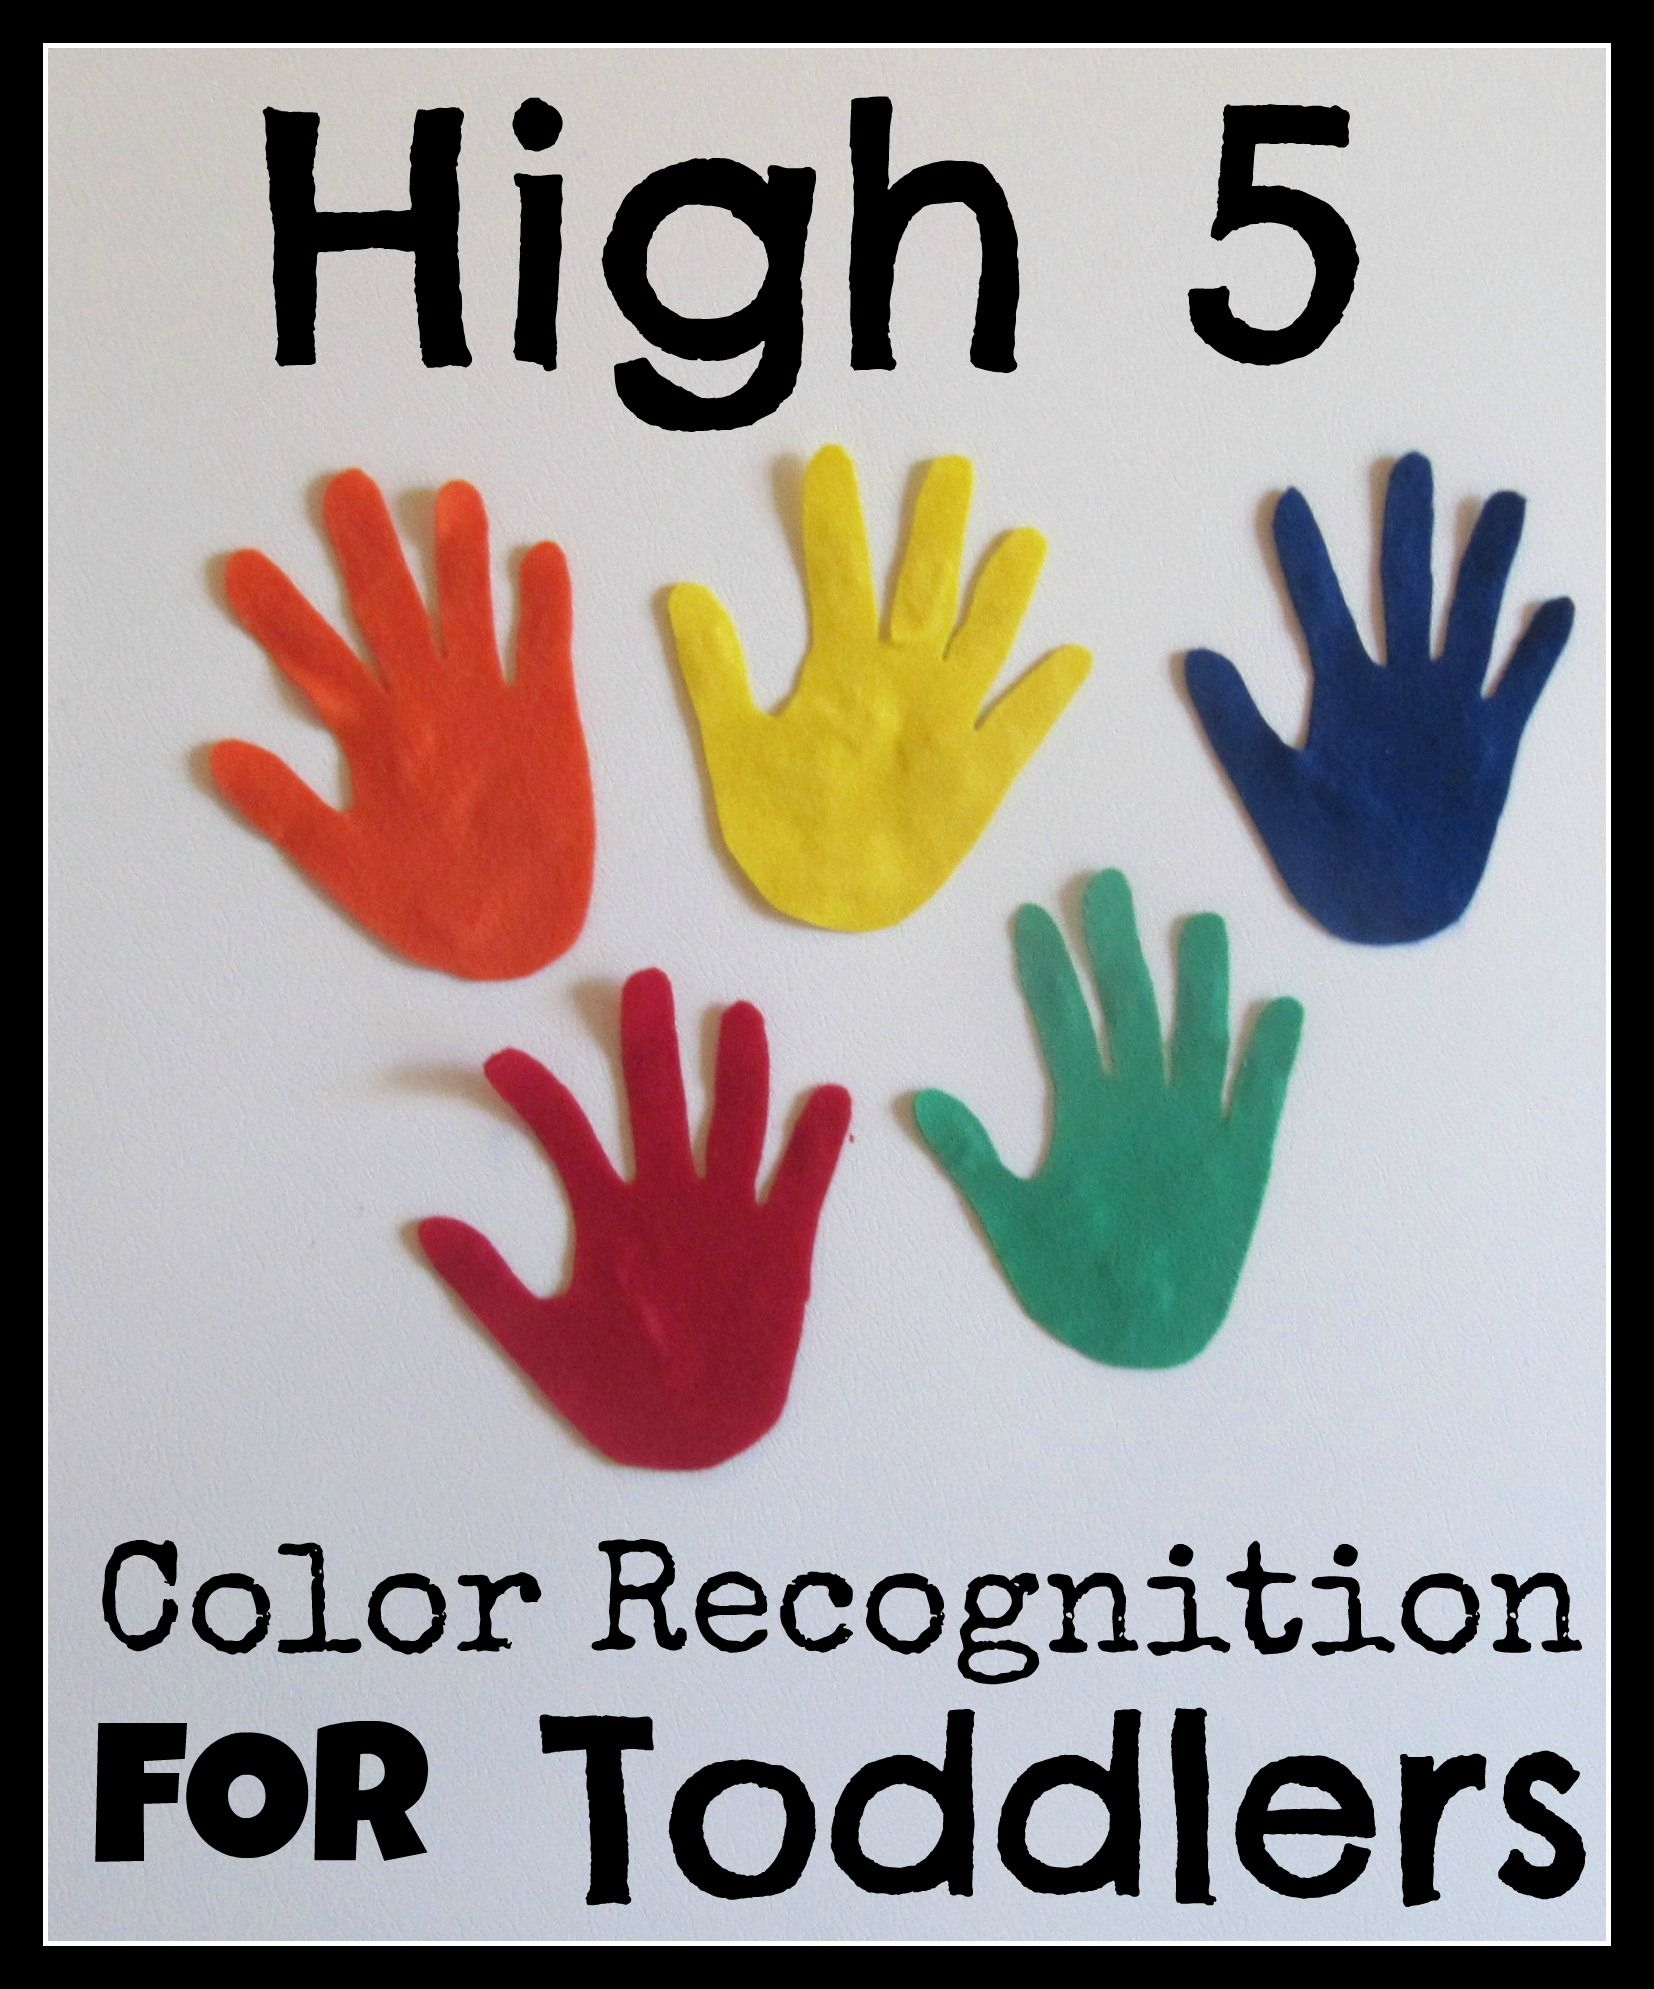 Color Recognition You Can Use Foam Or Paper Instead Of